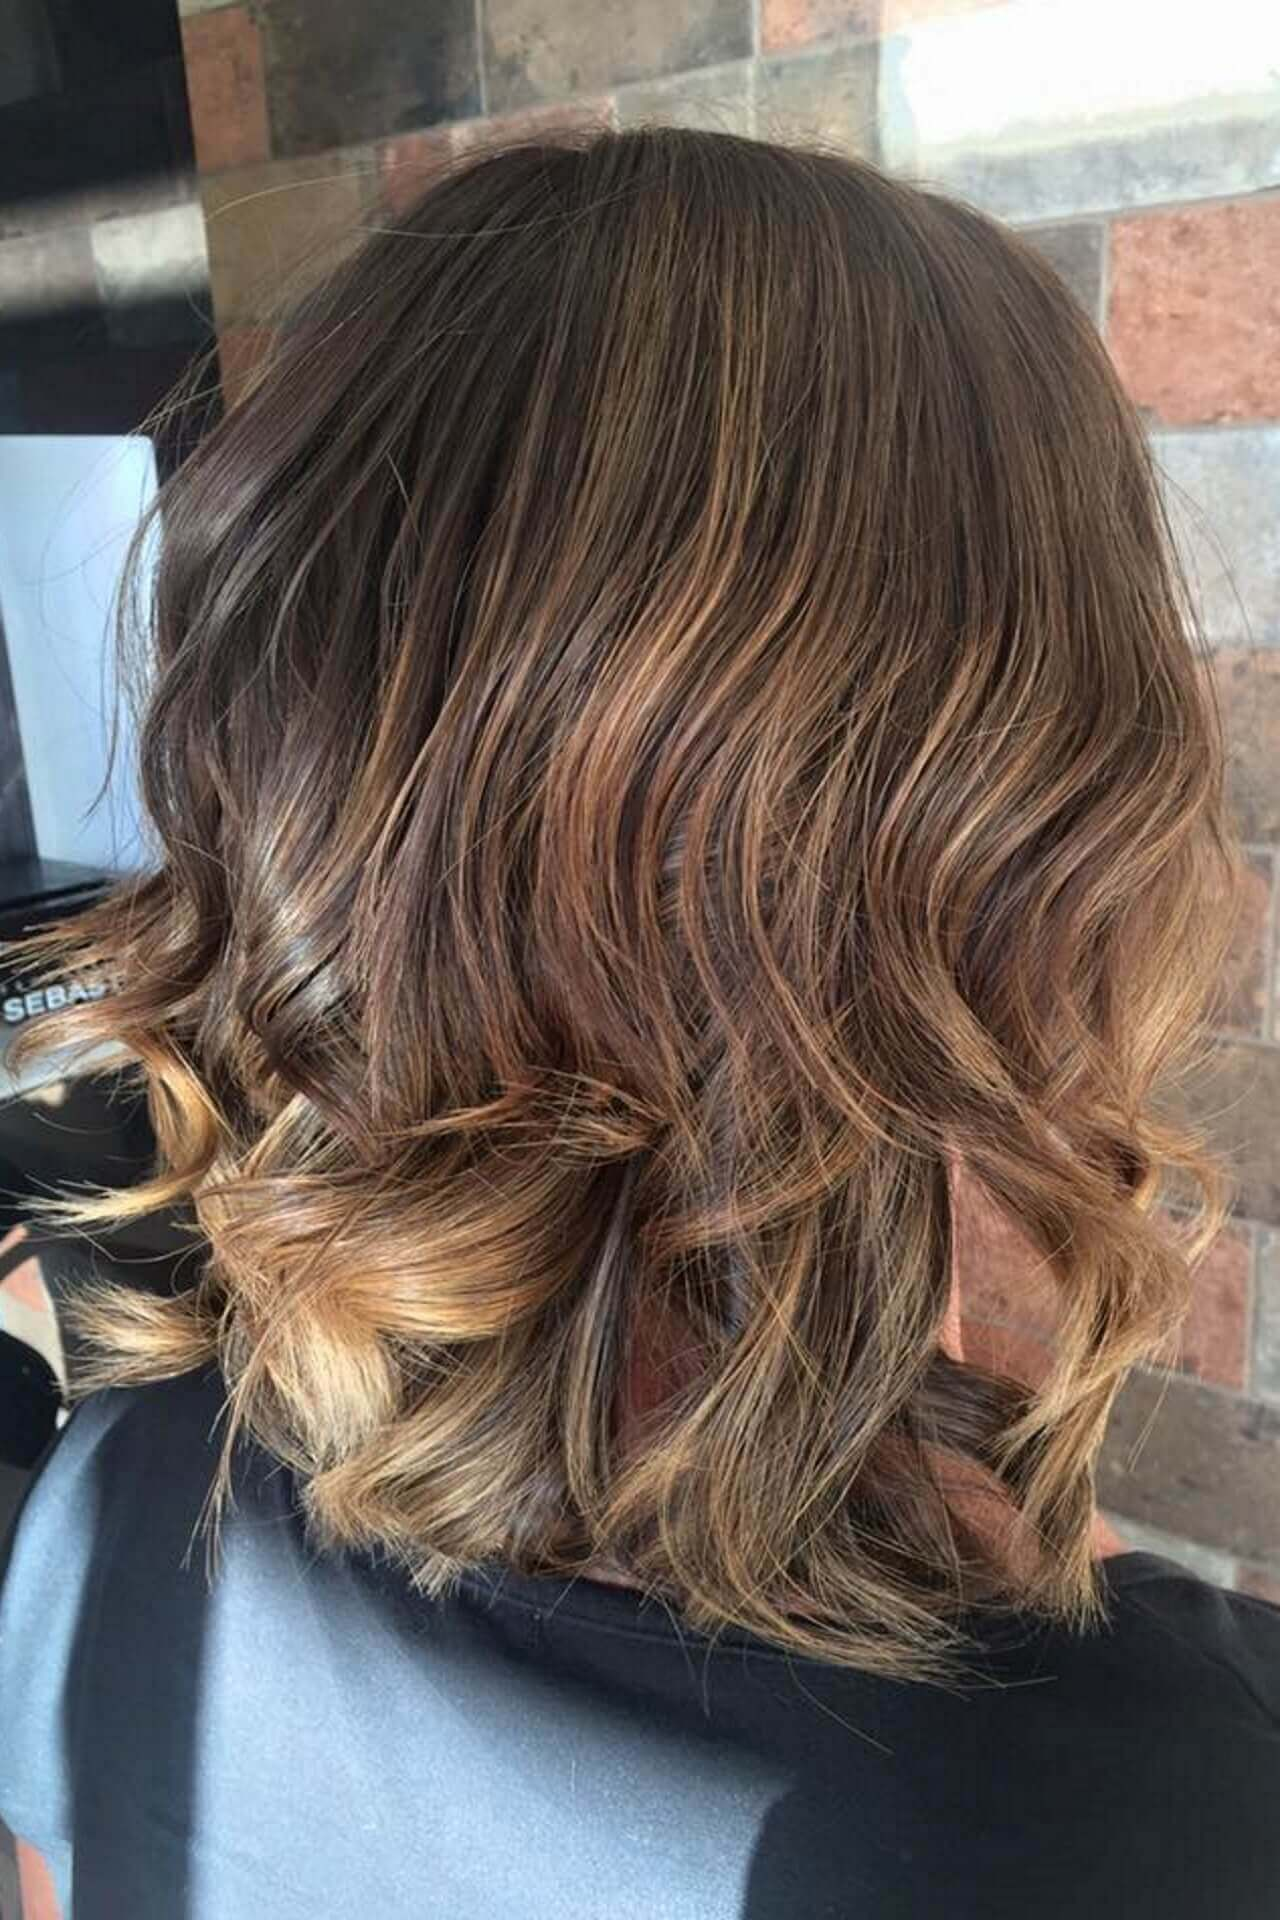 Samantha Jones Hair Co Our Work Image Gallery - Long Natural Wave Hair Salon Cut Above Shoulder